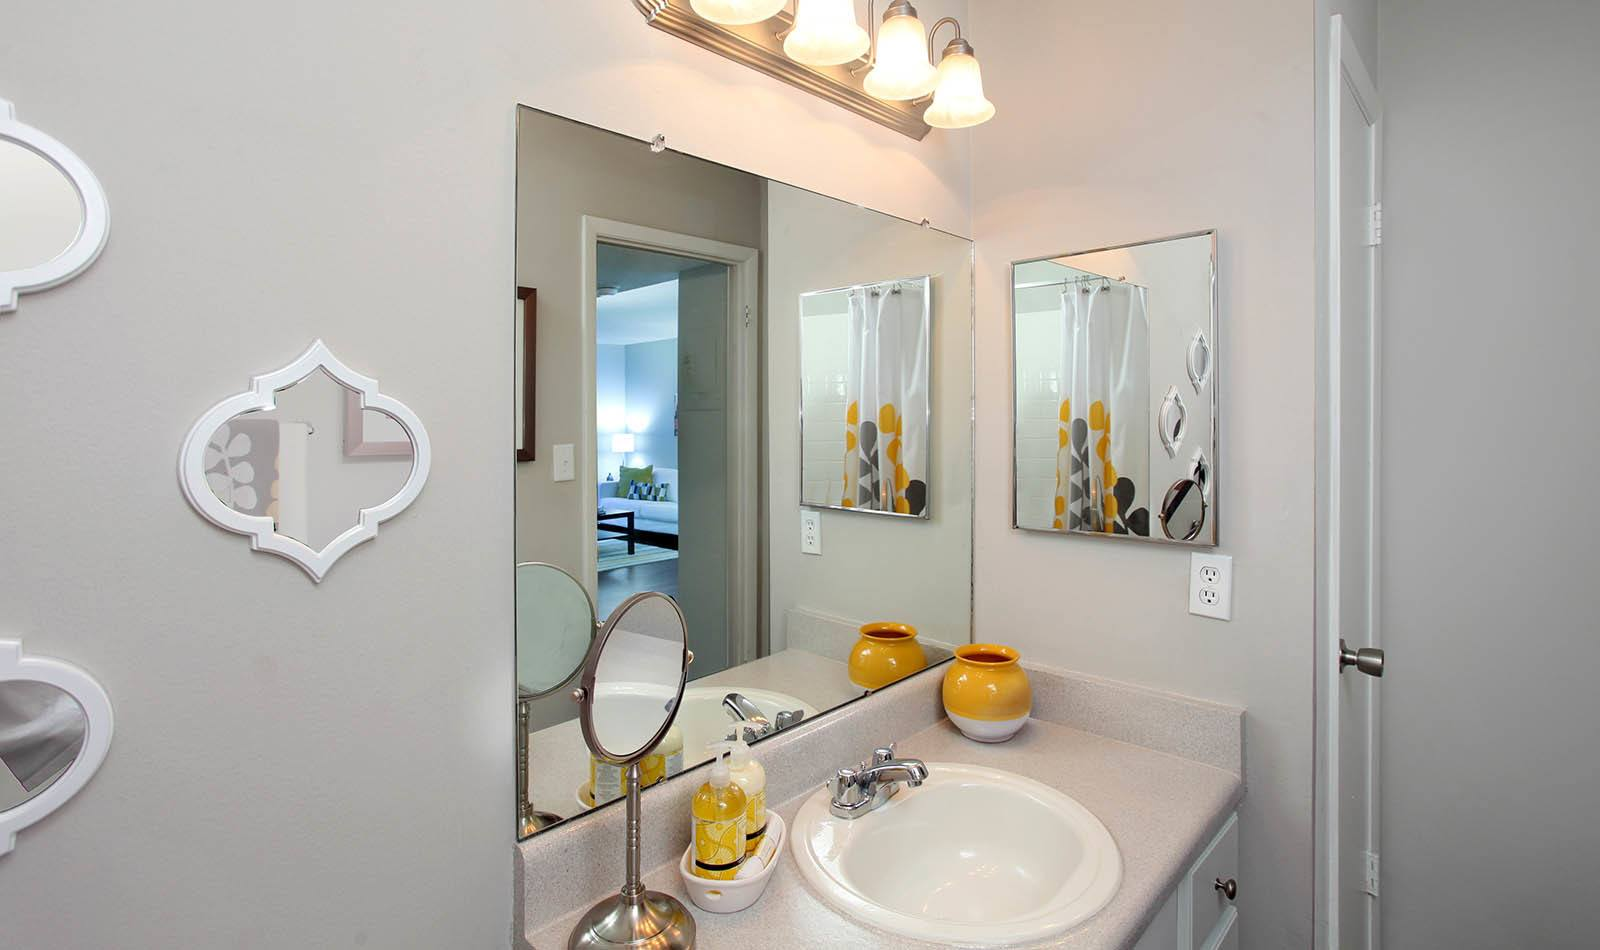 Bathroom at Legend Oaks Apartments in Tampa